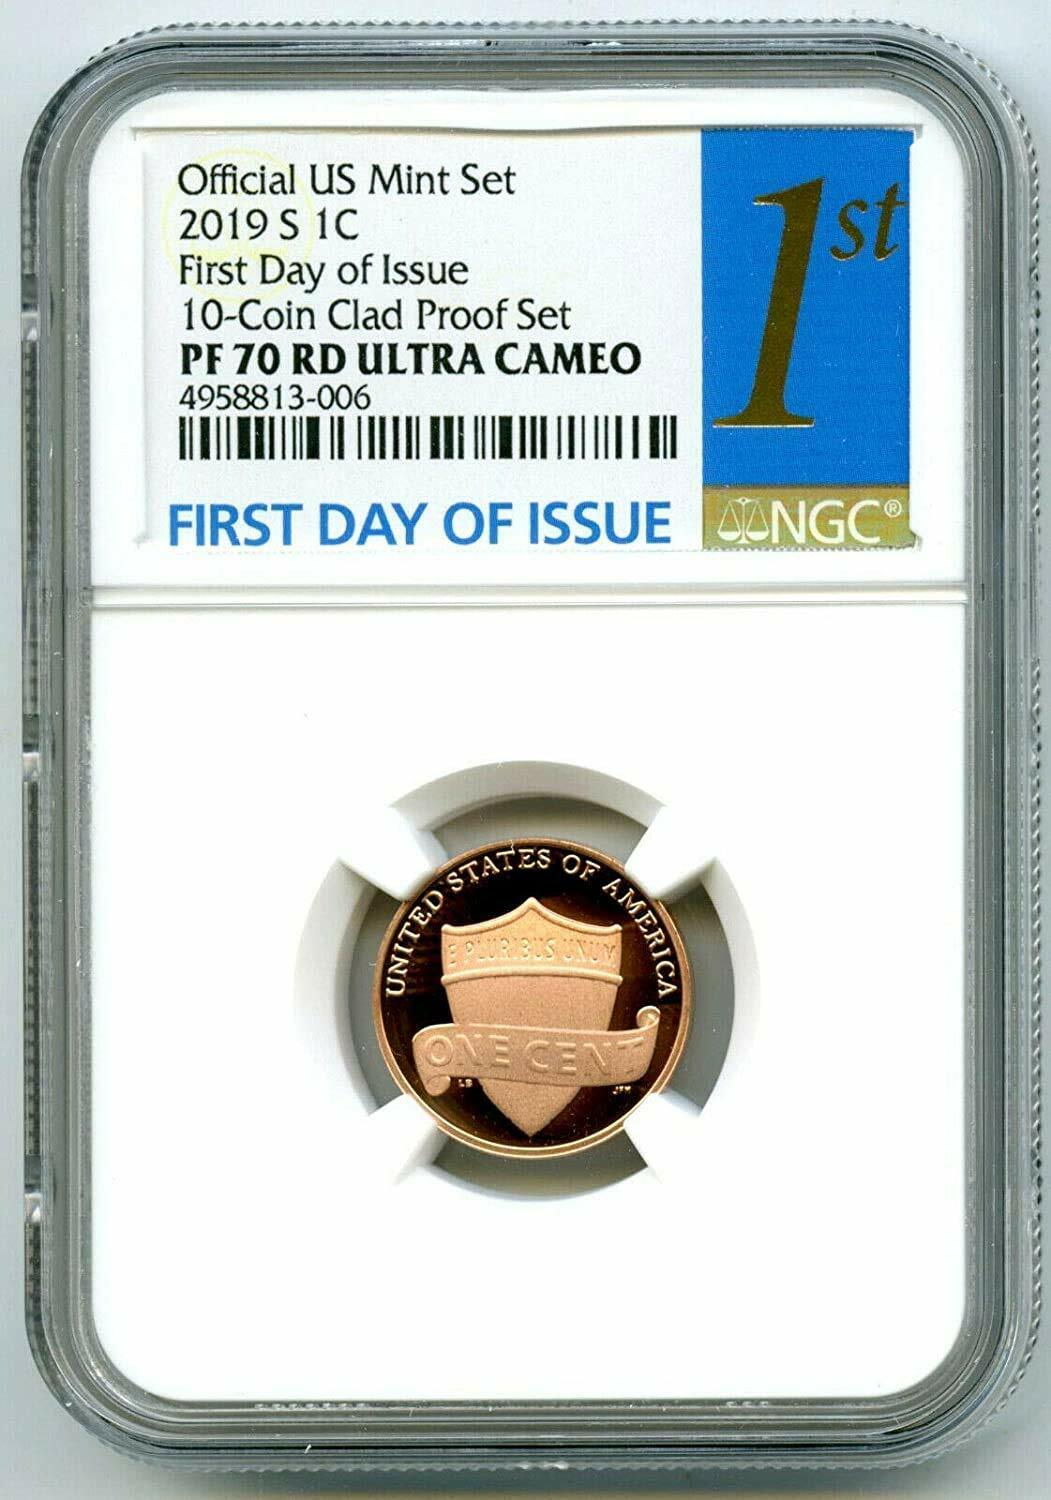 2019 S LINCOLN PENNY NGC PF70 RD UCAM FIRST DAY ISSUE PROOF CENT 1ST BLUE LABEL - $14.50